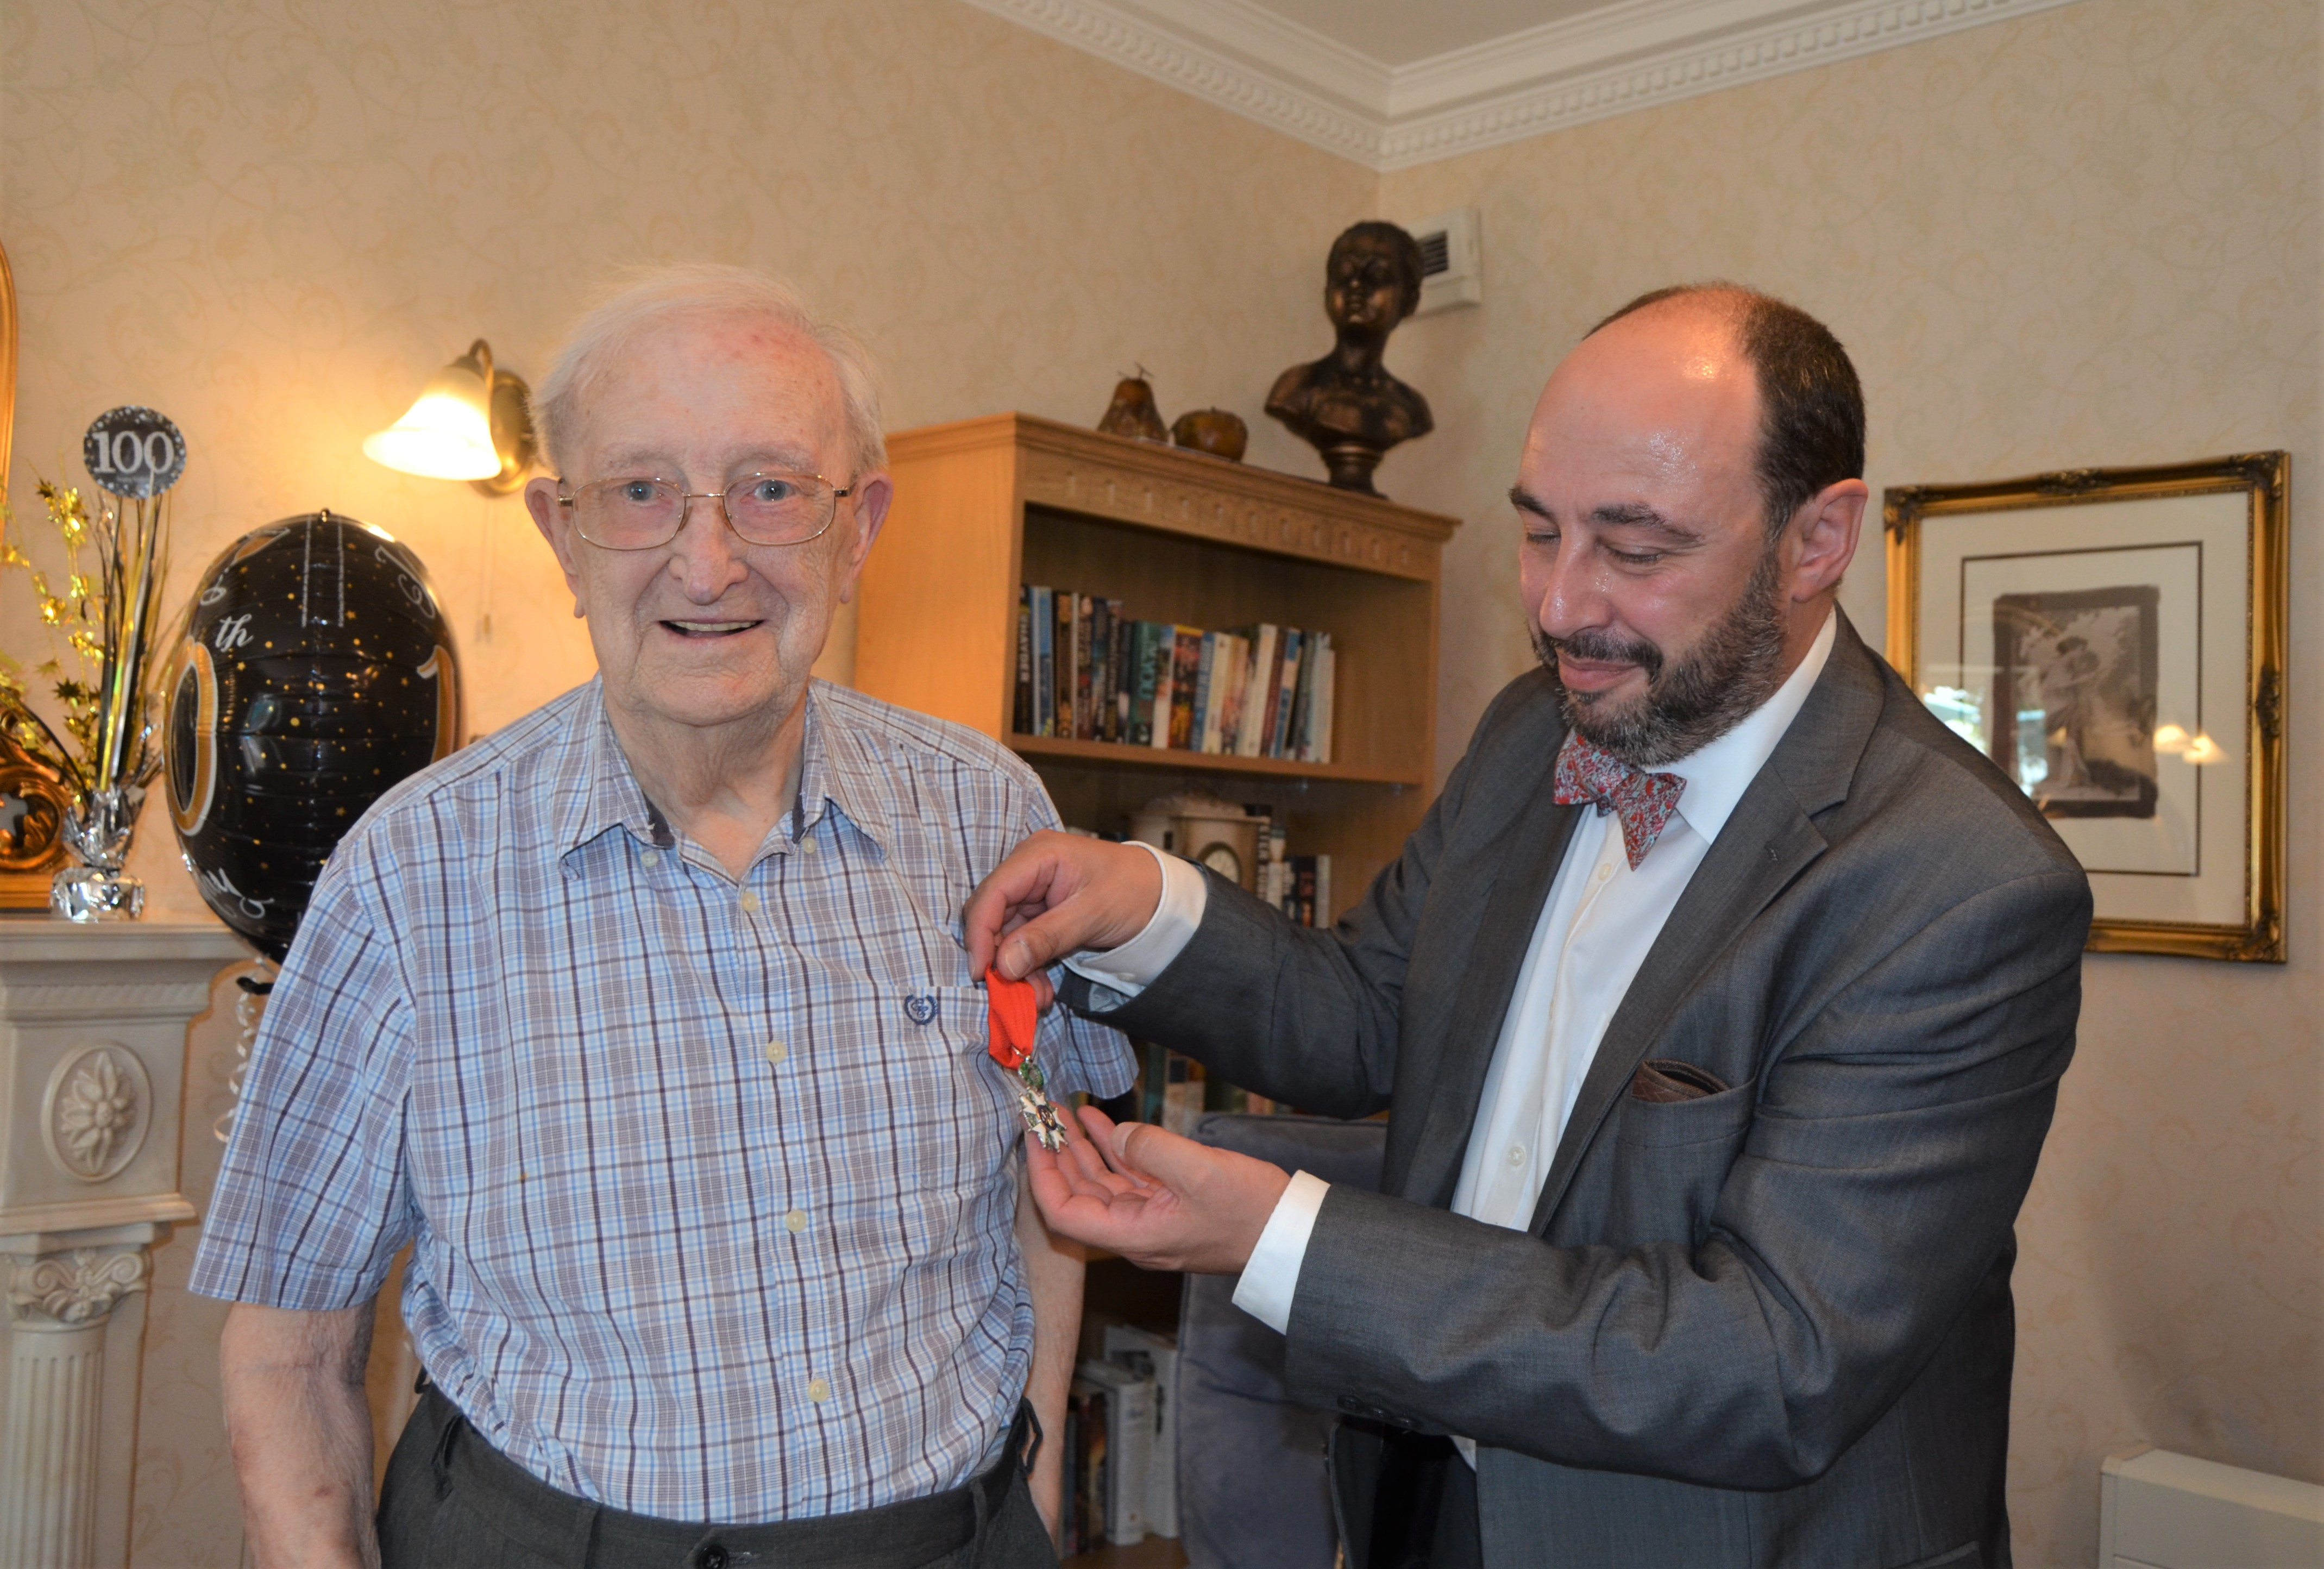 Hall Park Care Home, Nottinghamshire-The French Consul Jean-Claude Lafontaine presenting Arthur with his Légion d'honneur